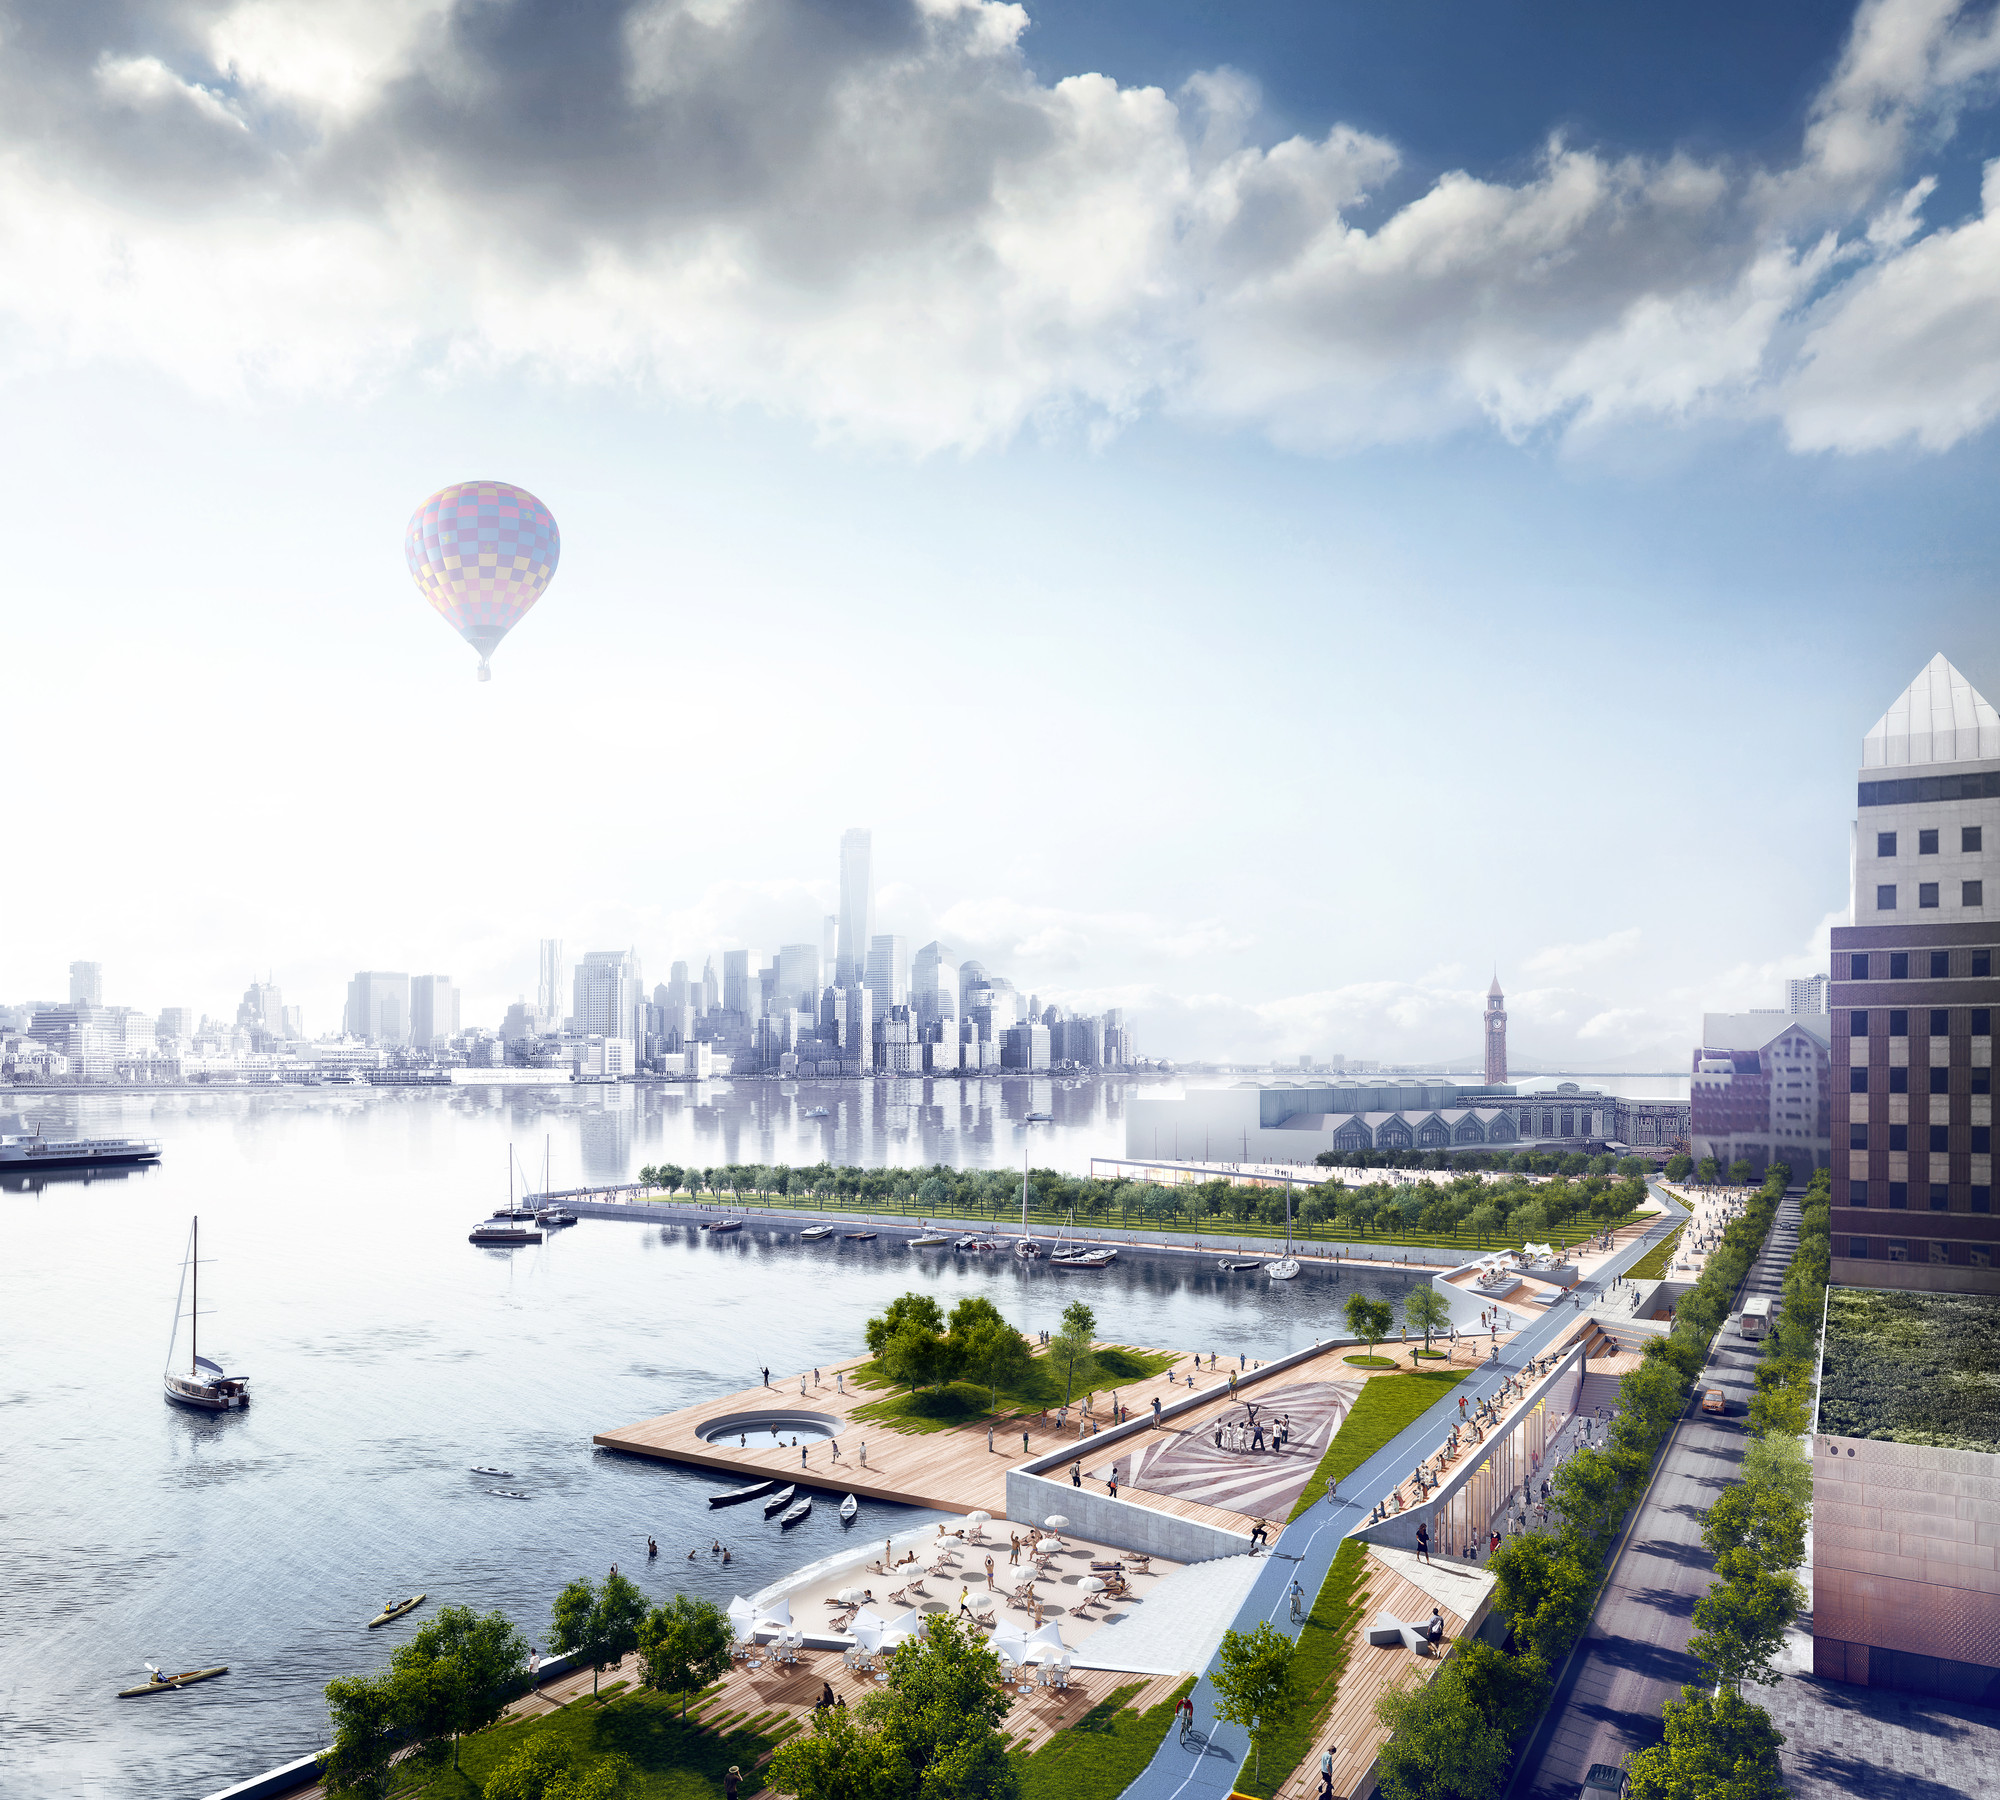 OMA & BIG among 6 Winners in Rebuild By Design Competition, The proposed Hoboken Waterfront. Image © OMA